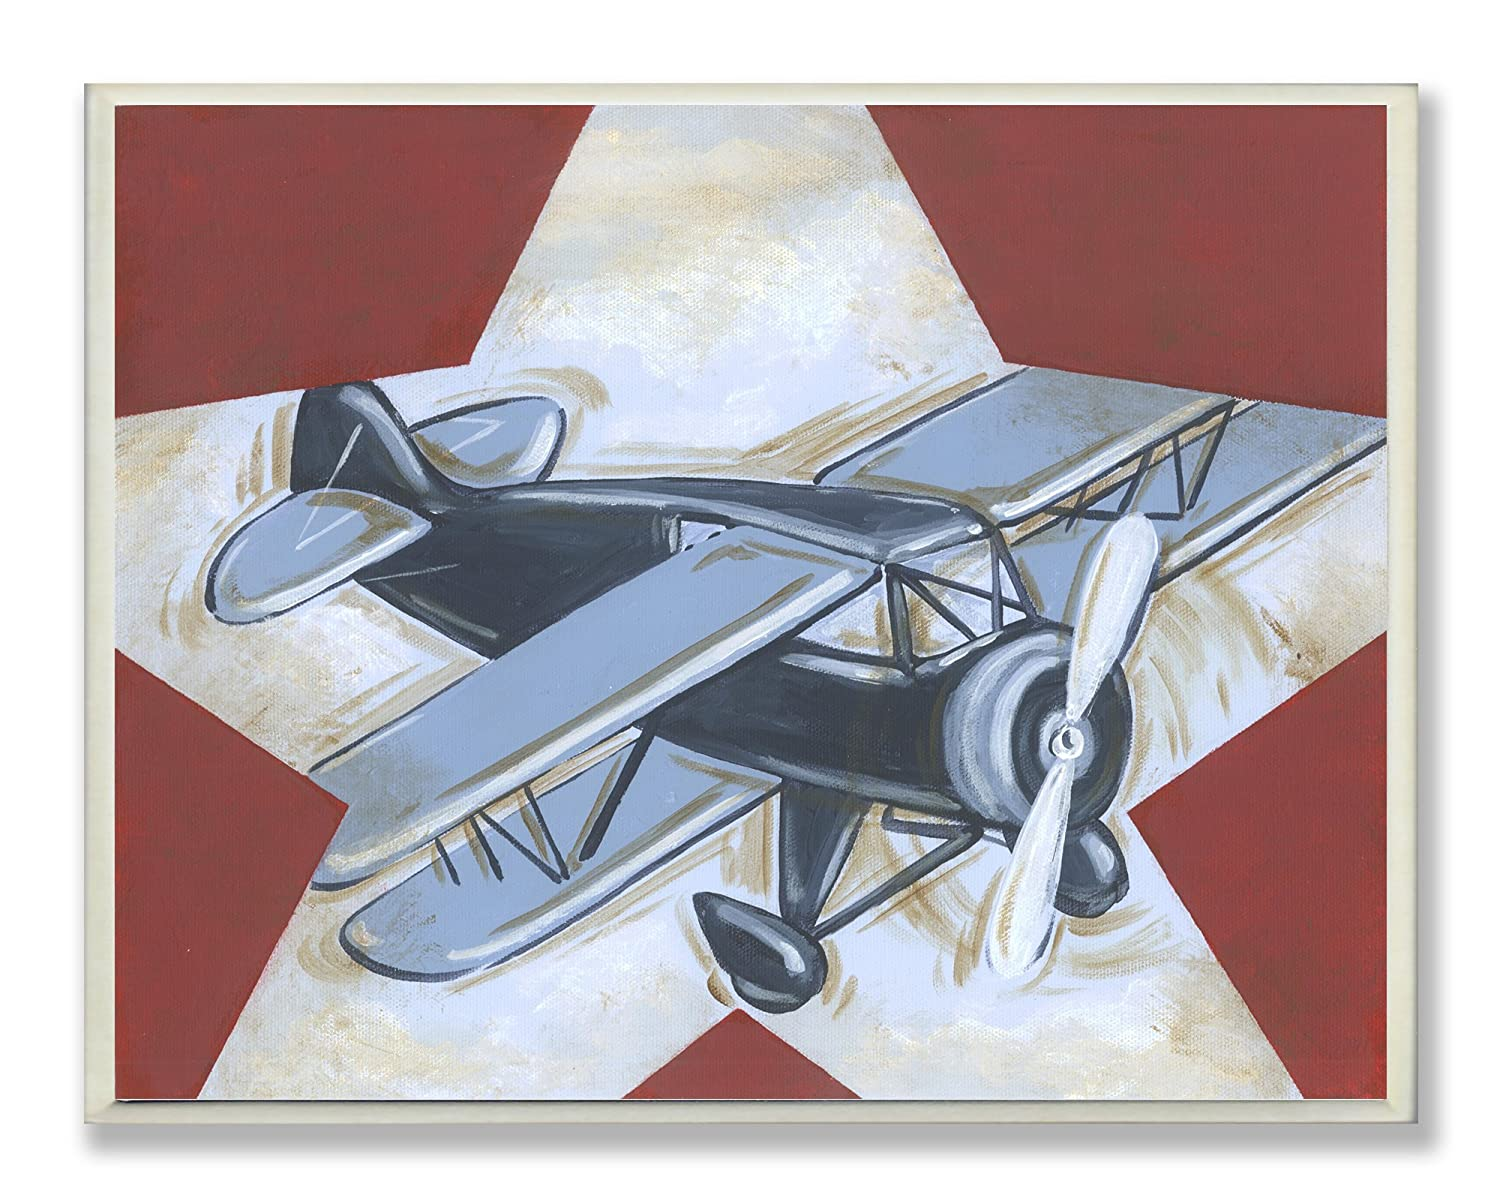 The Kids Room by Stupell Blue Plane on White Star and Red Background Rectangle Wall Plaque